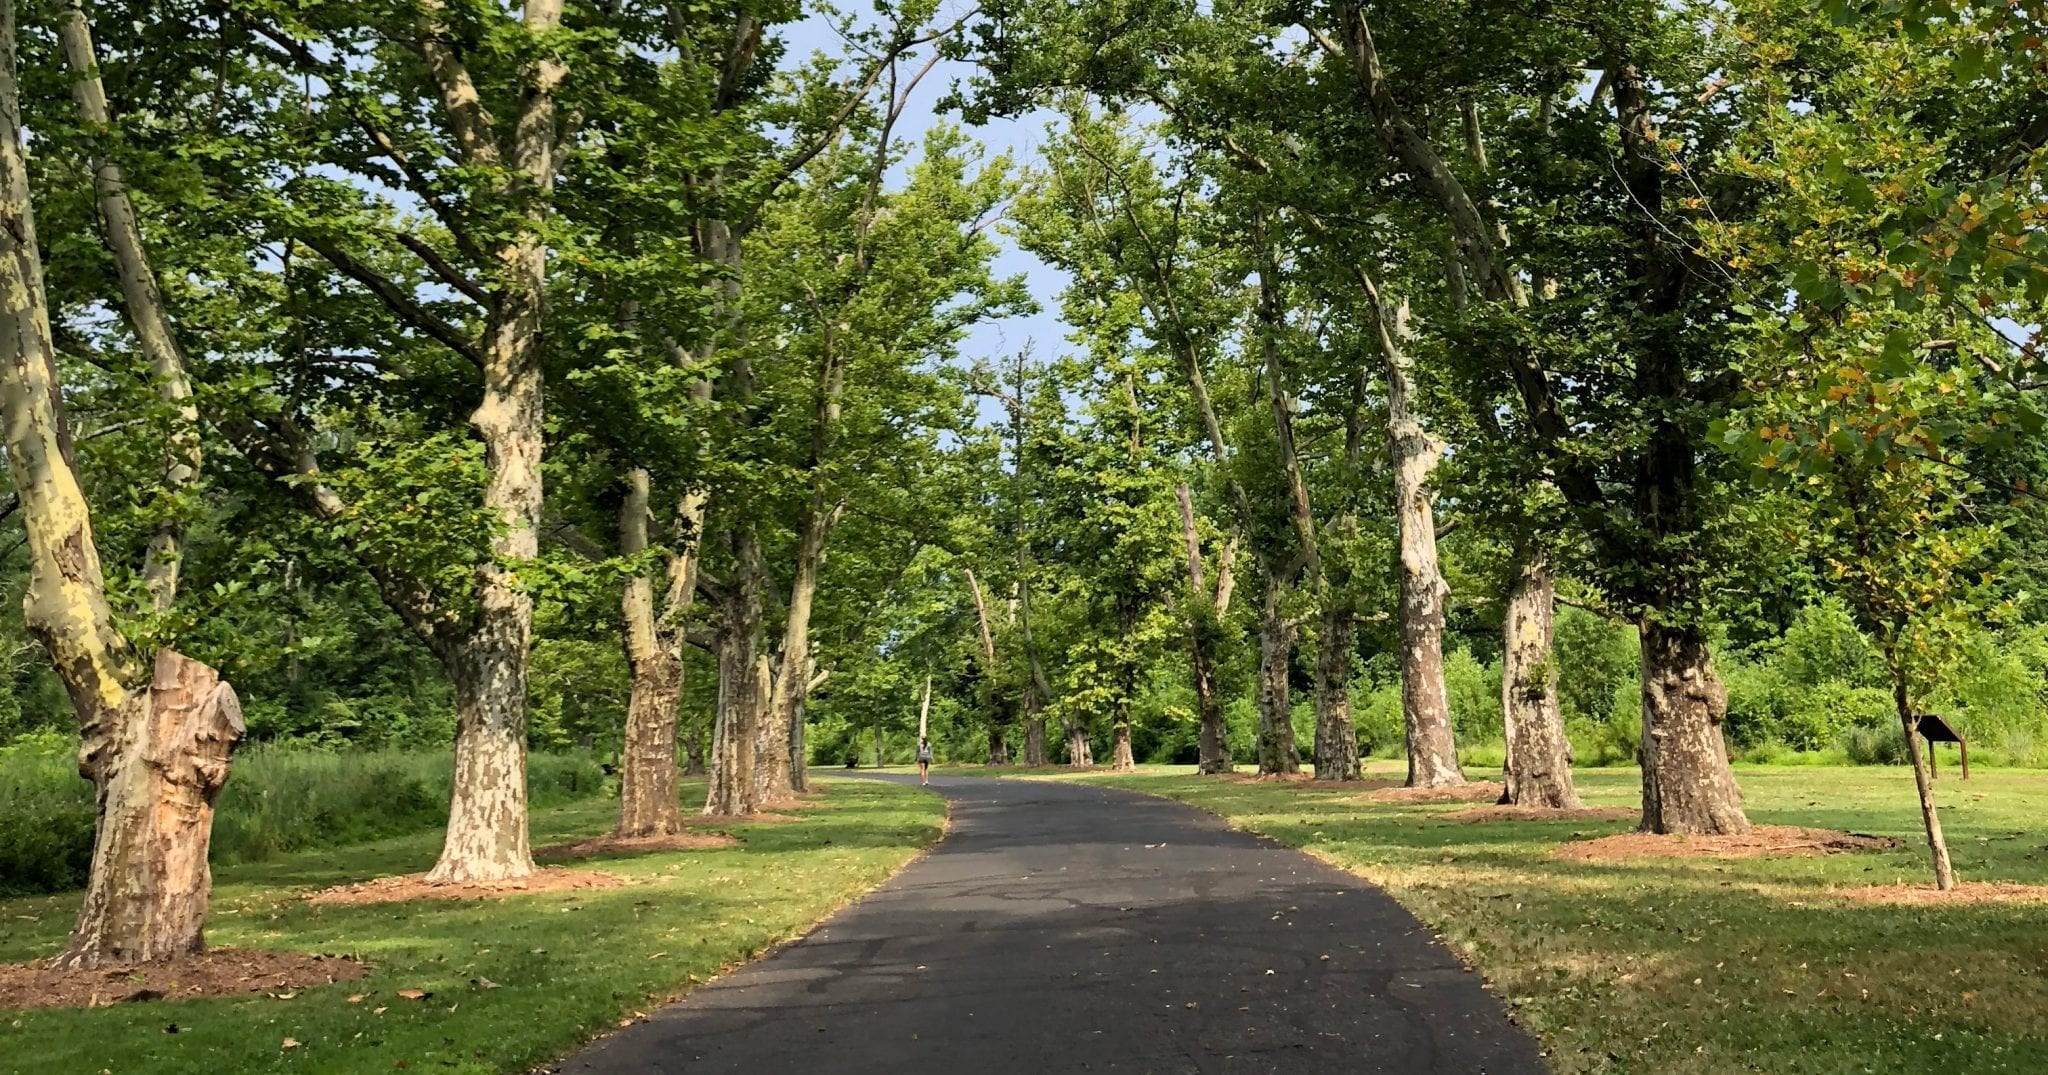 7 of the Best Gardens & Arboretums in the Garden State